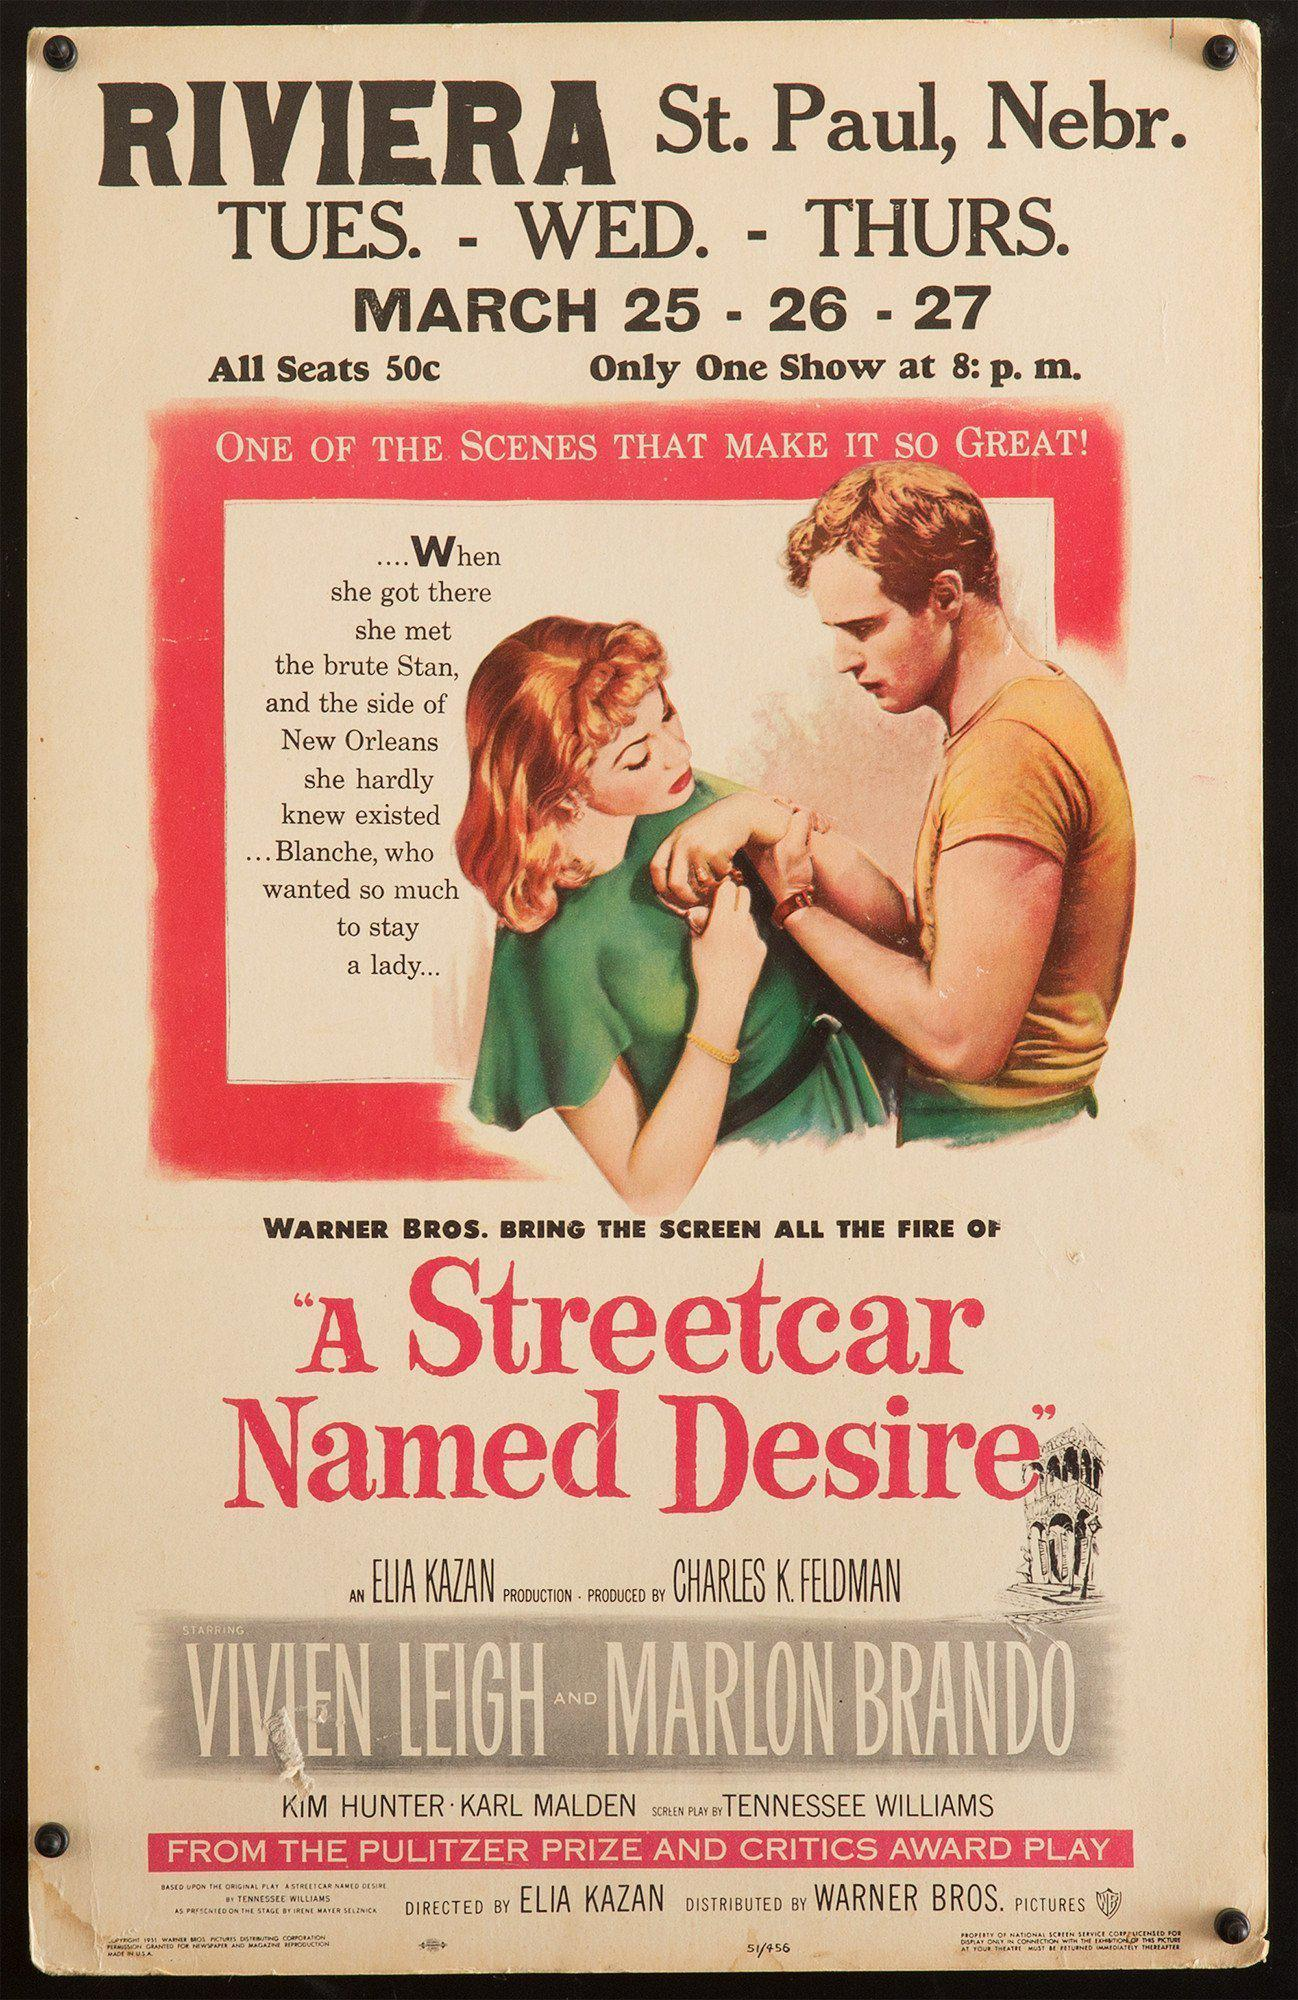 A Streetcar Named Desire Window Card (14x22) Original Vintage Movie Poster